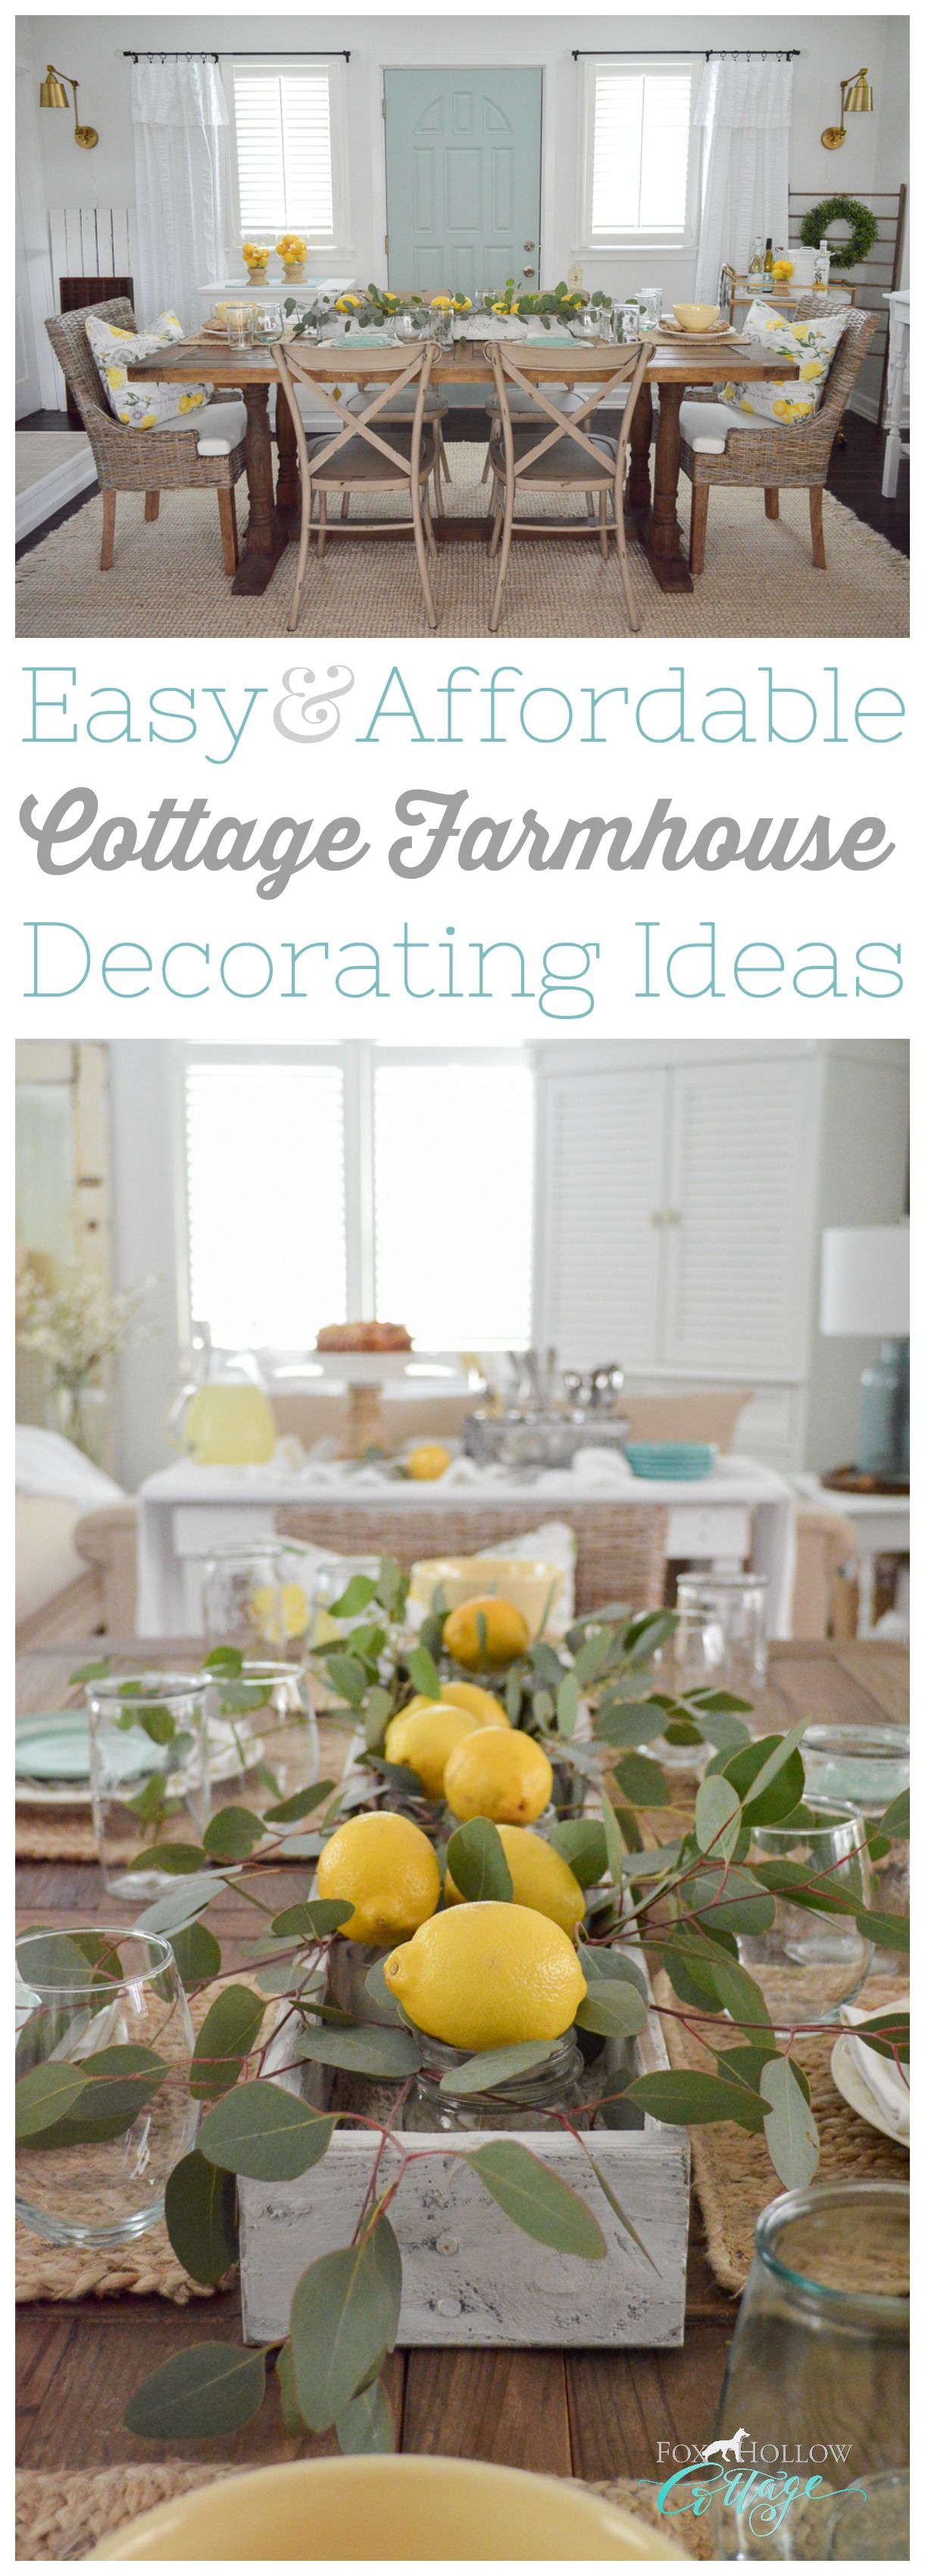 Easy affordable cottage farmhouse decorating ideas for Summer and beyond, at www.foxhollowcottage.com